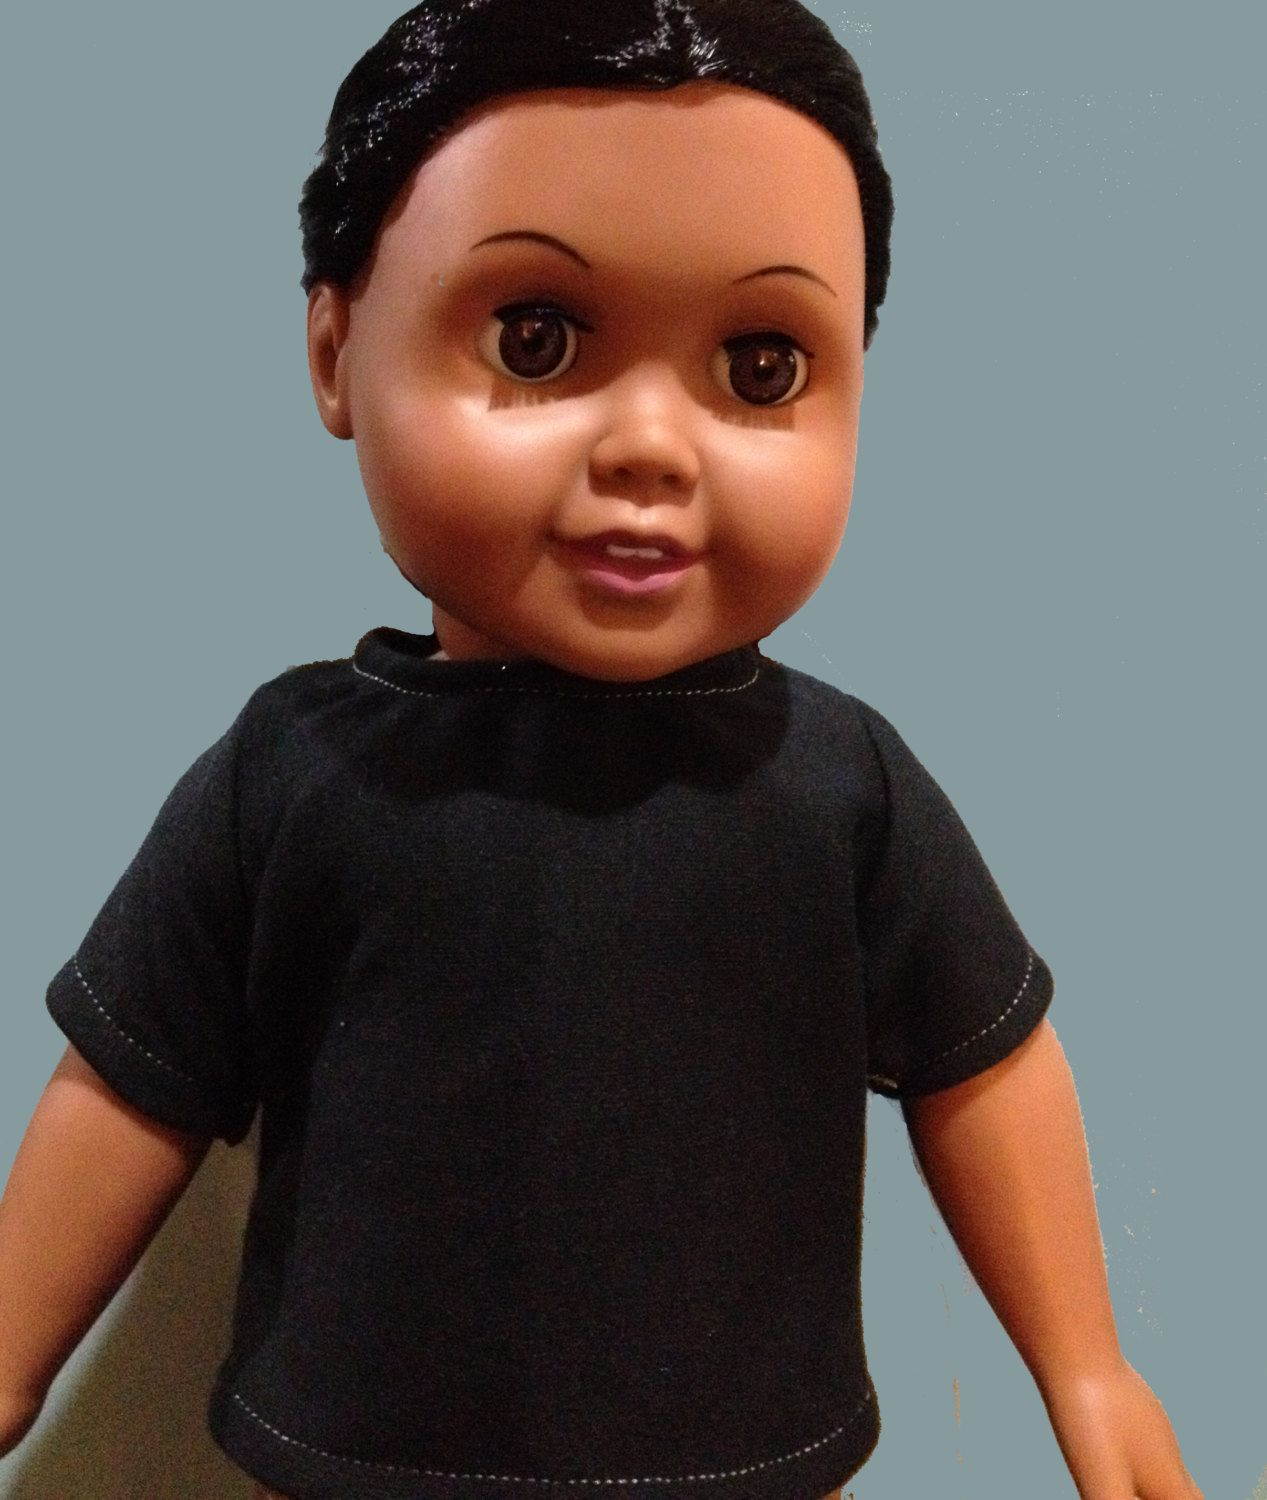 Black t shirt goes with - American Boy Doll T Shirt Inch Doll T Shirt Black Or Heather Grey Every Little Boy Doll Needs T Shirts This T Shirt Closes In The Back With Velcro For Easy